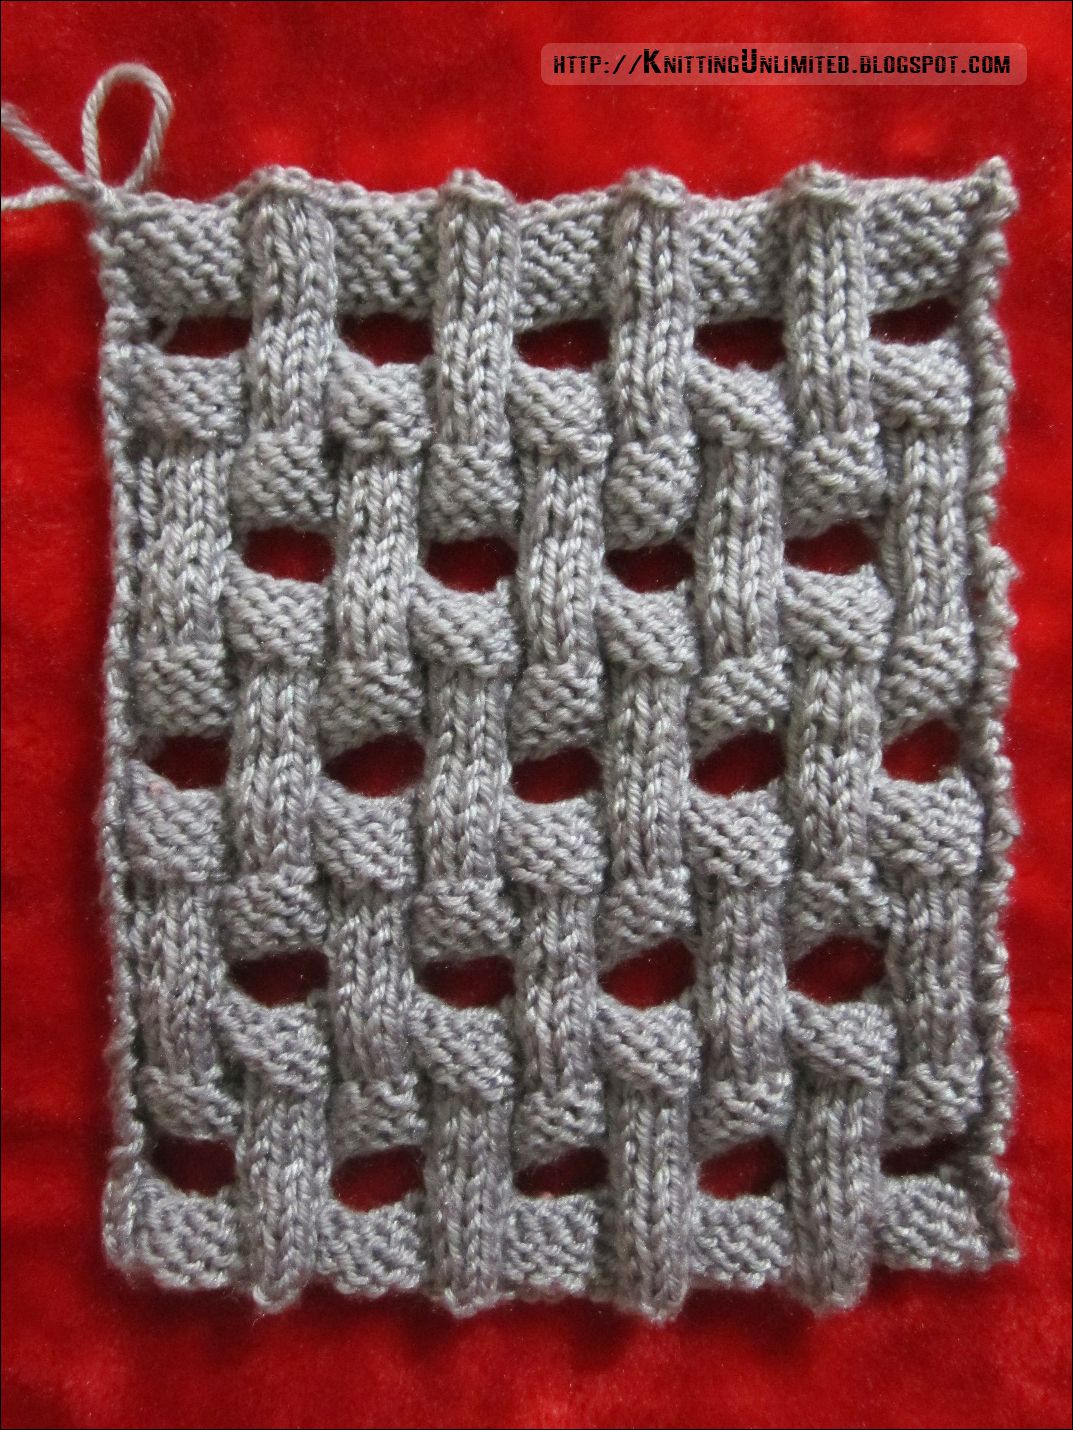 Knit-Purl Combinations: Pattern 2 - Openwork Basket Weave - Knitting ...